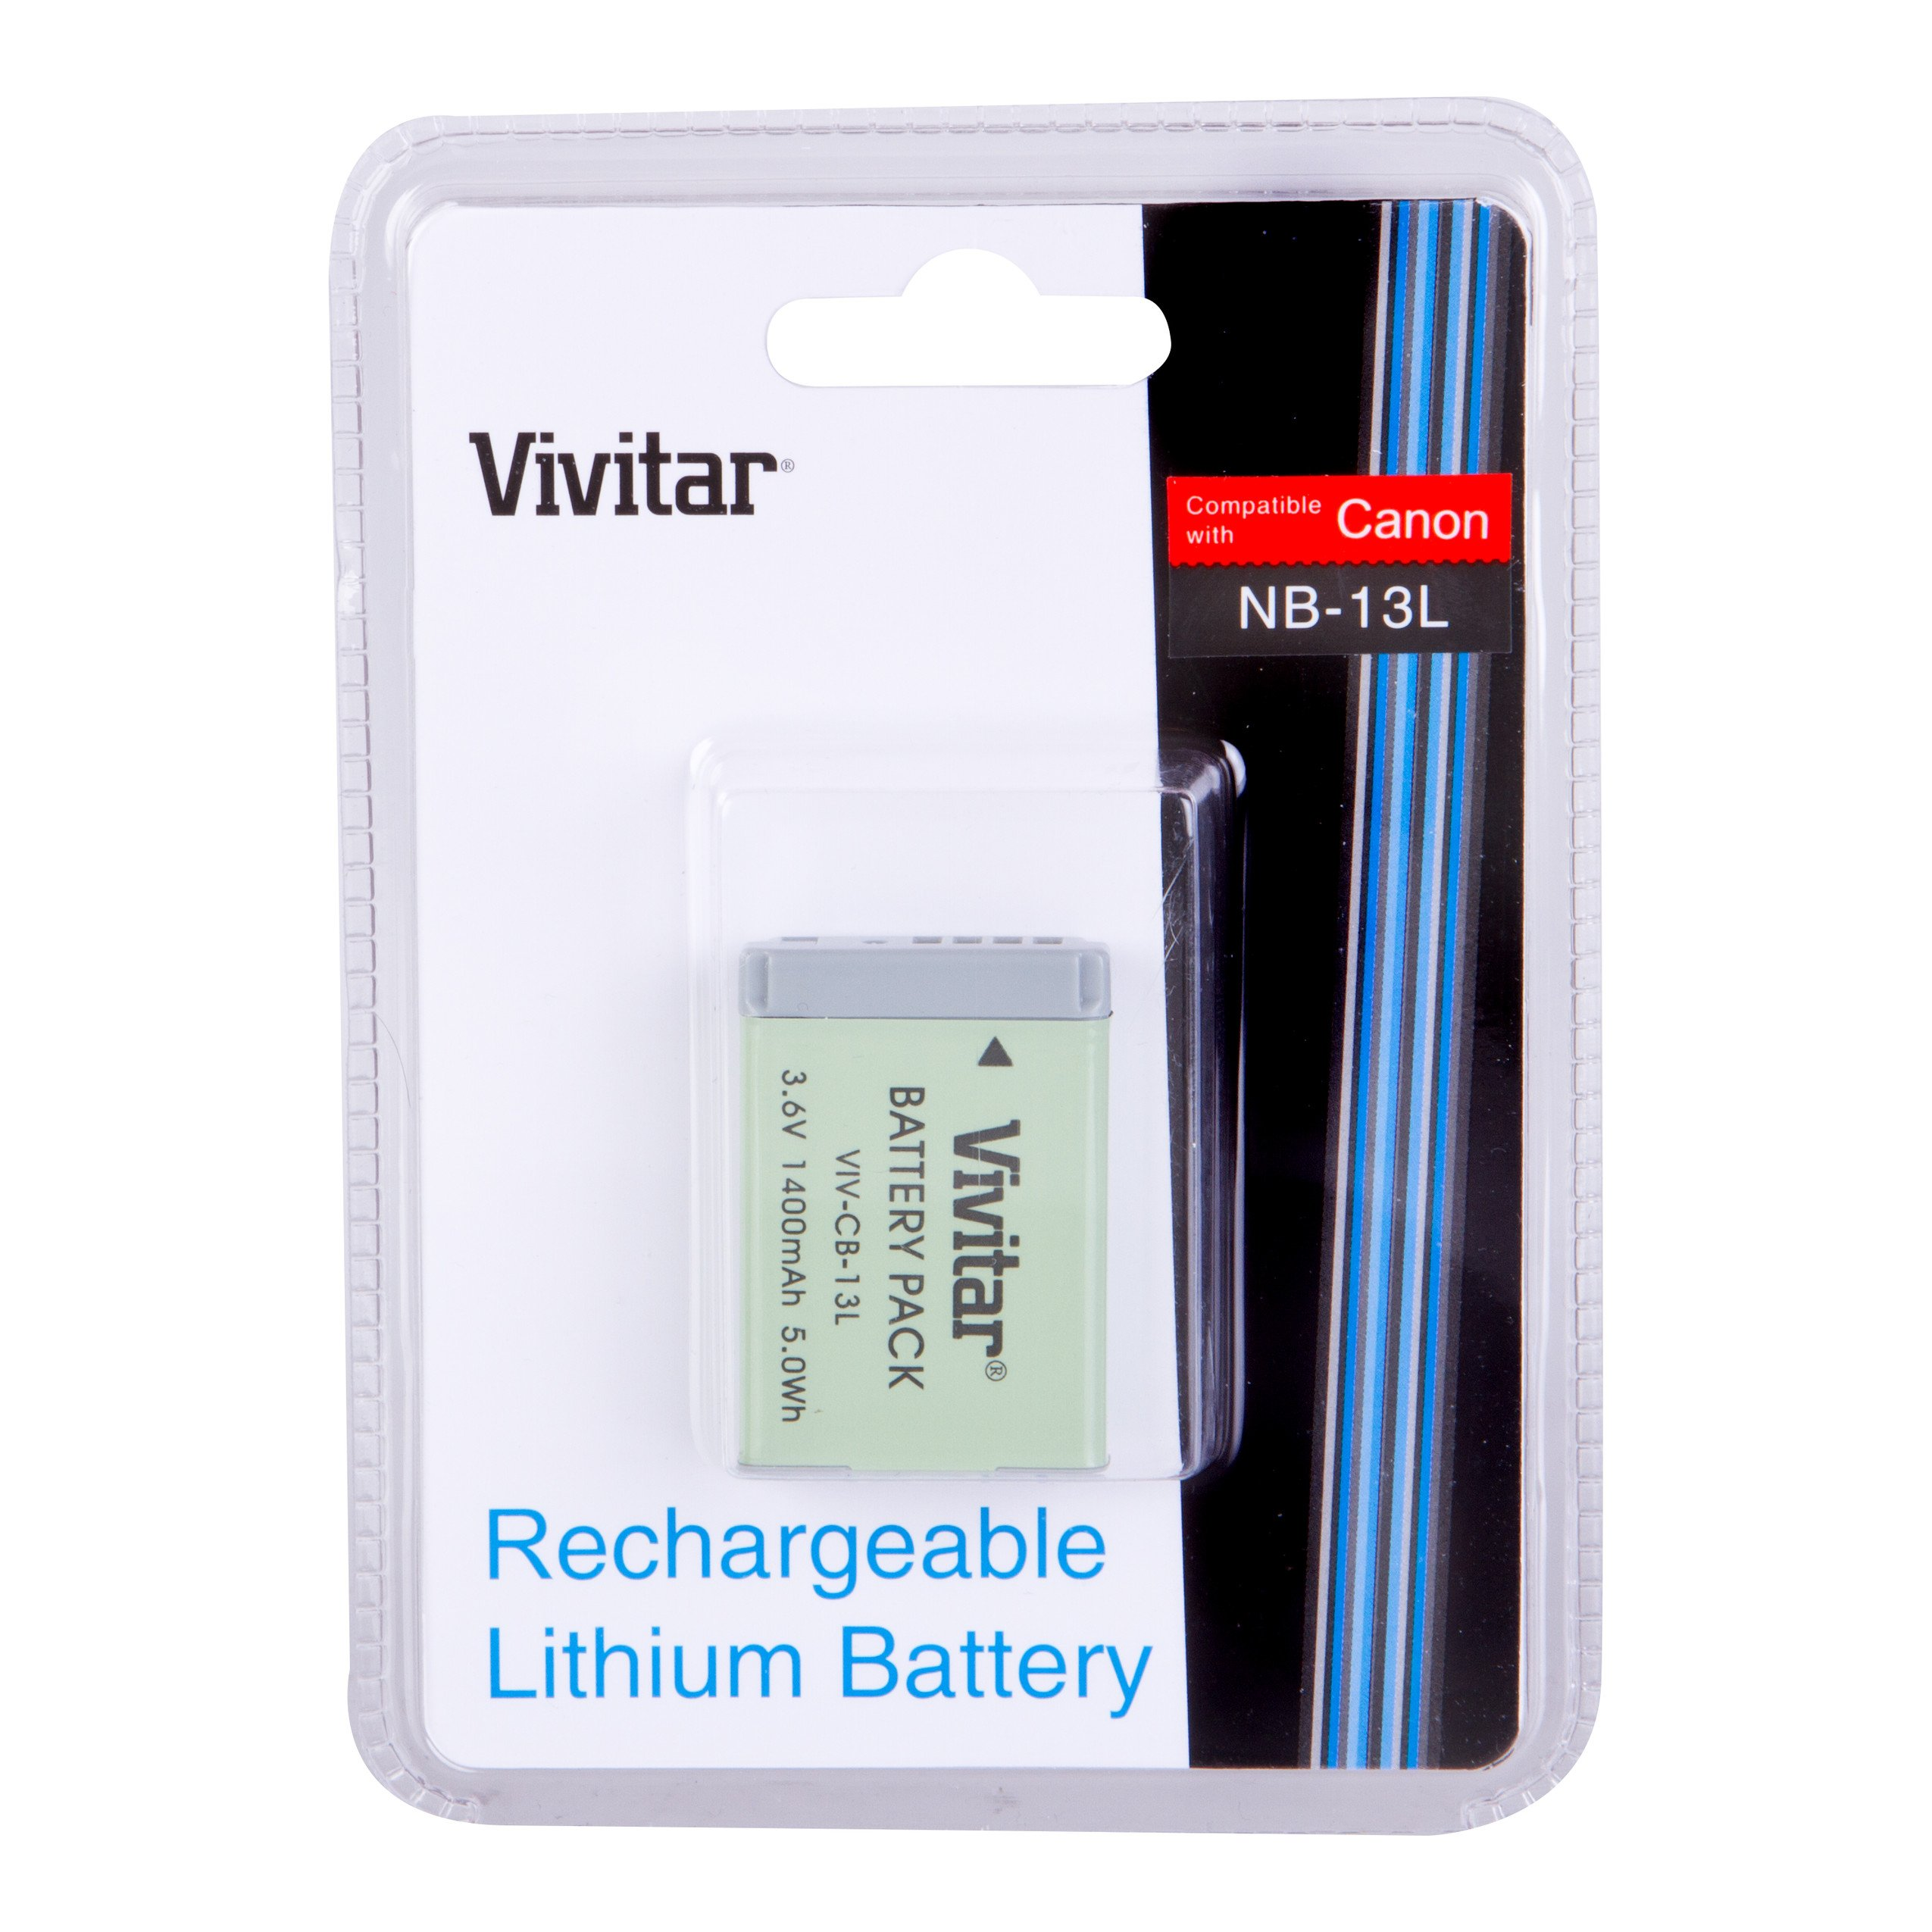 Vivitar VIV-CB-13L Li-On Battery for Canon NB-13L 1400Mah (White) by Vivitar